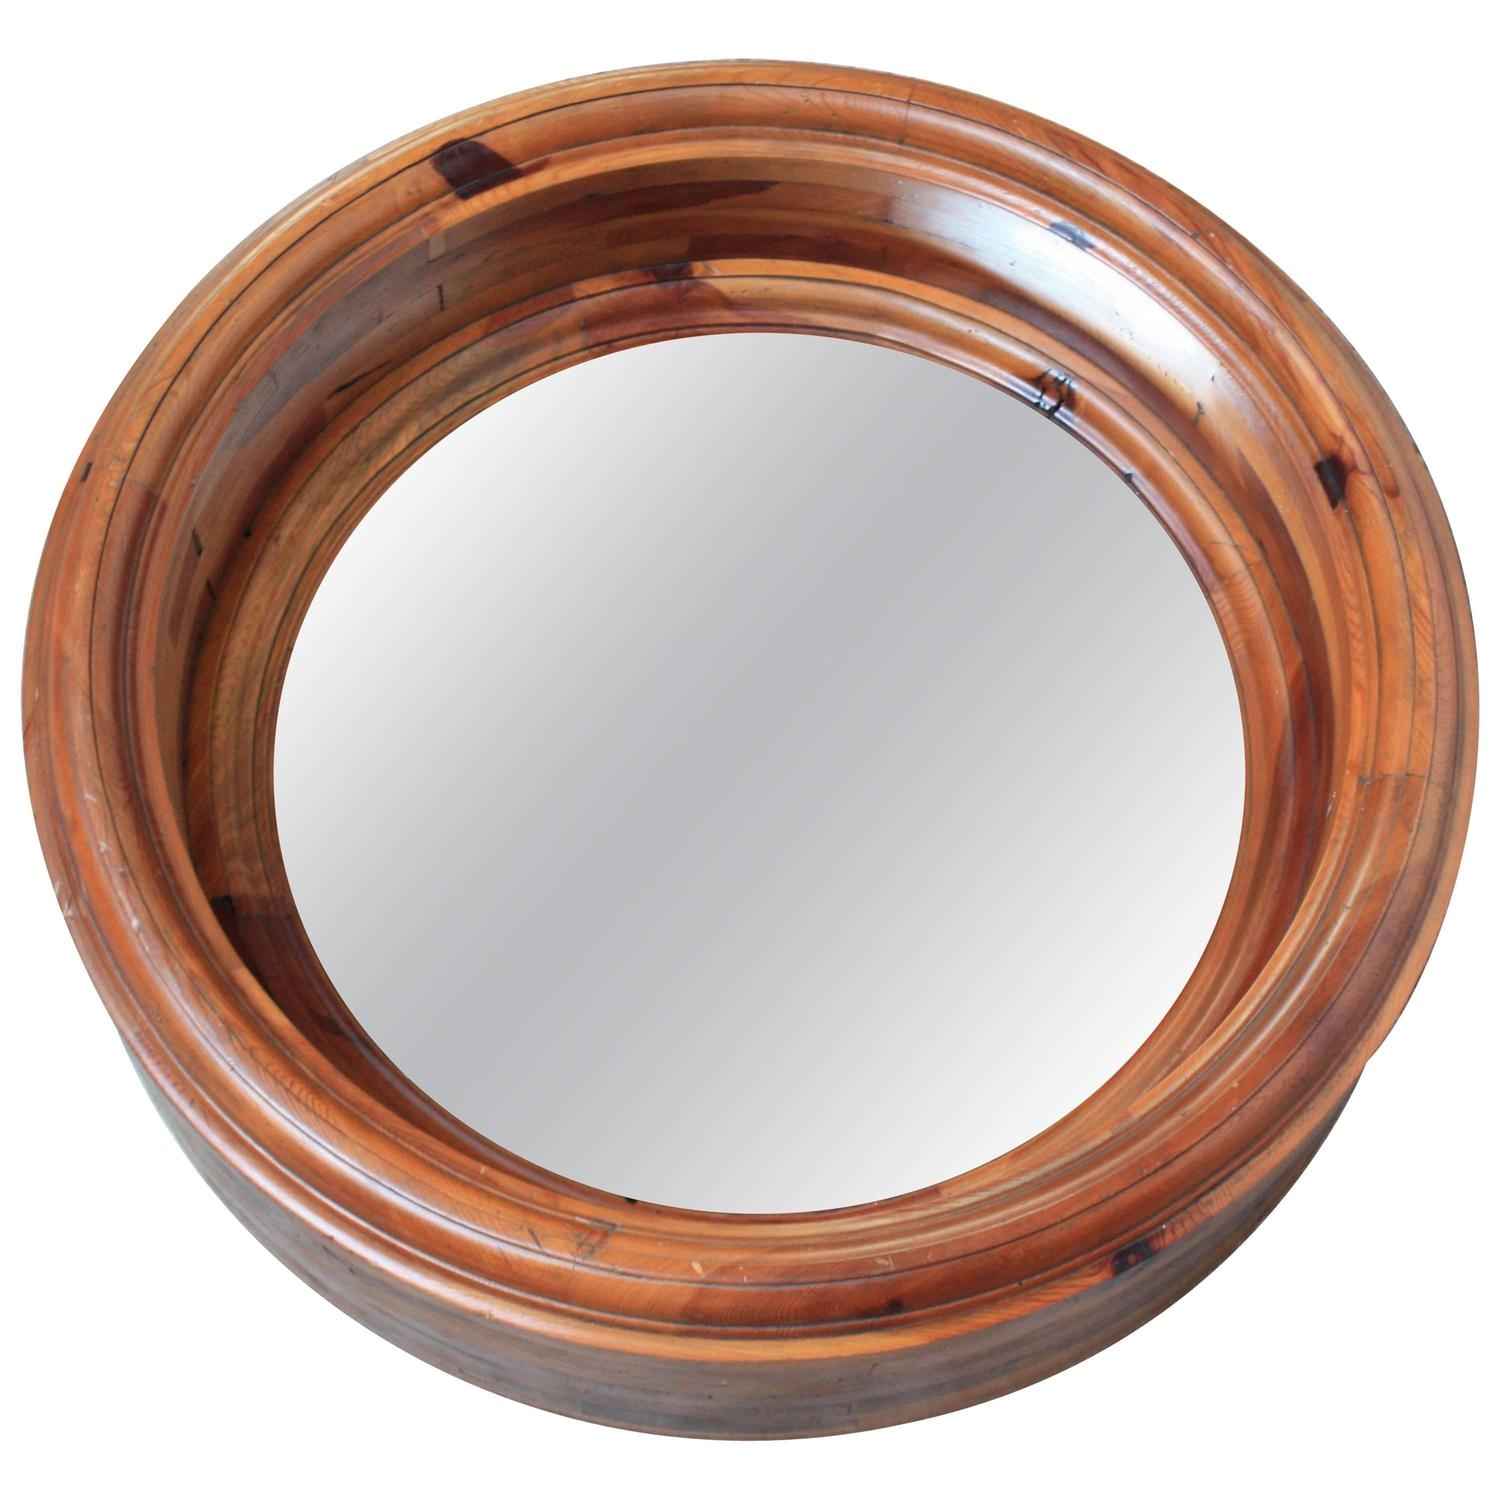 Large Wooden Porthole Mirror Ralph Lauren For Sale At 1stdibs Within Porthole Style Mirror (Image 9 of 15)